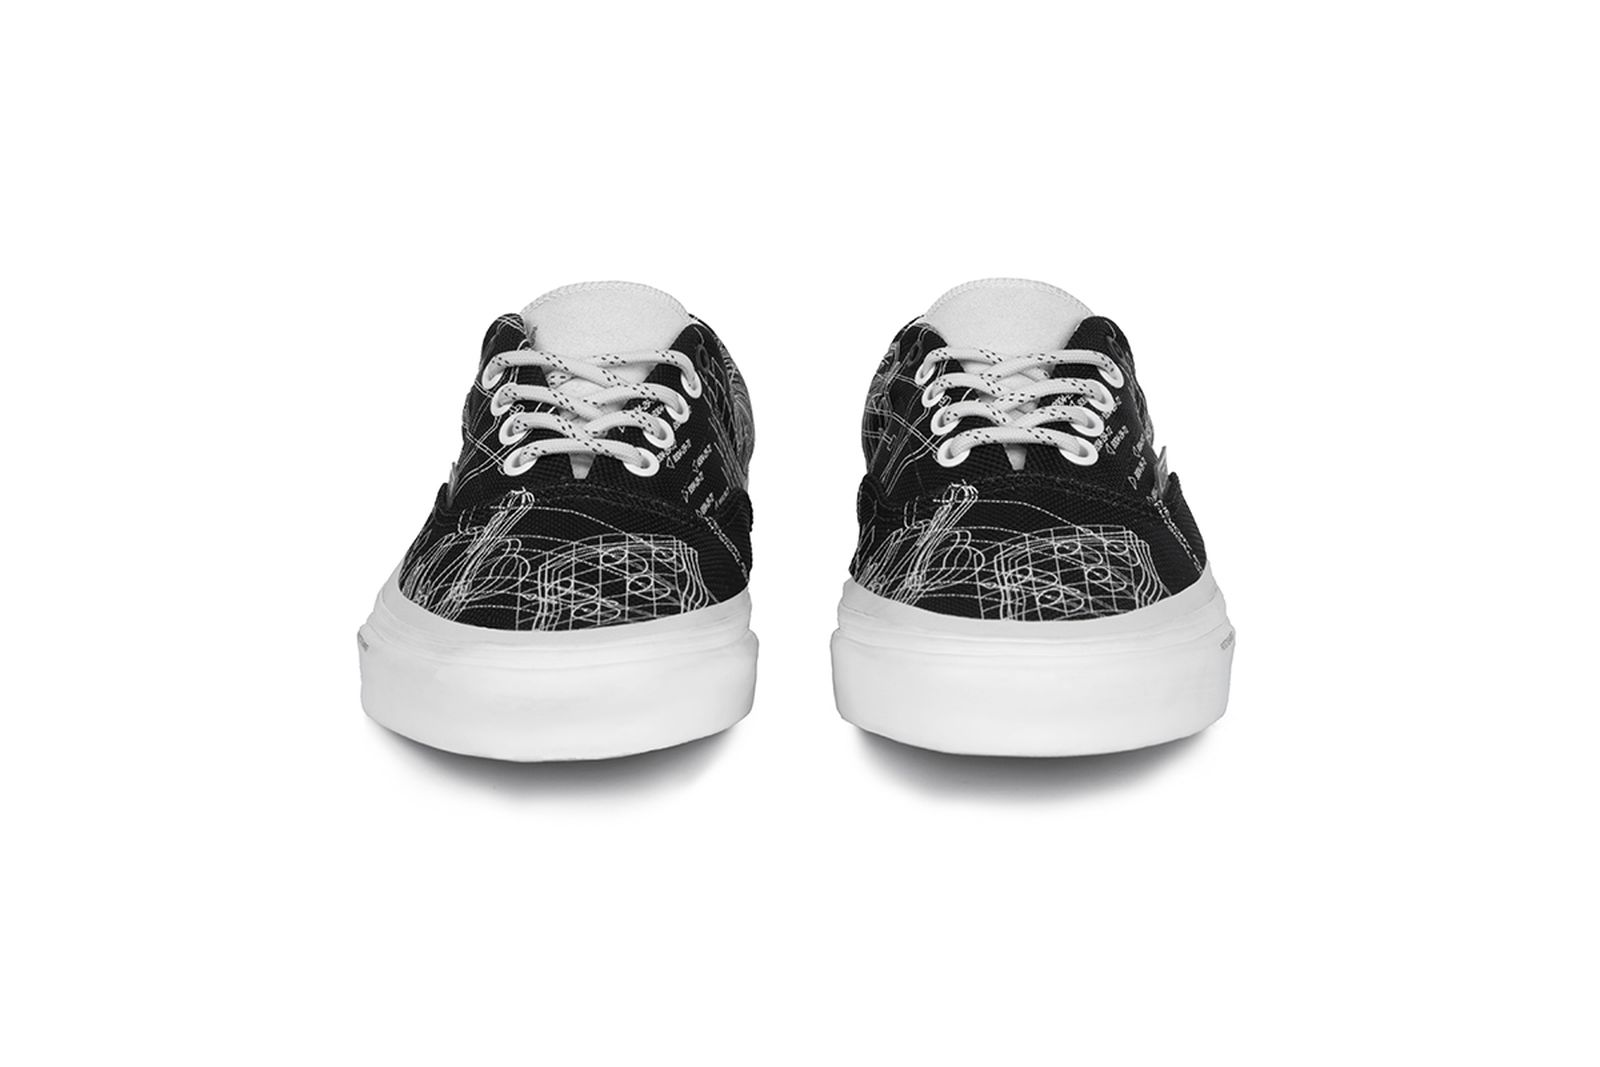 c2h4-vans-the-imagination-of-future-2-release-date-price-1-a-02